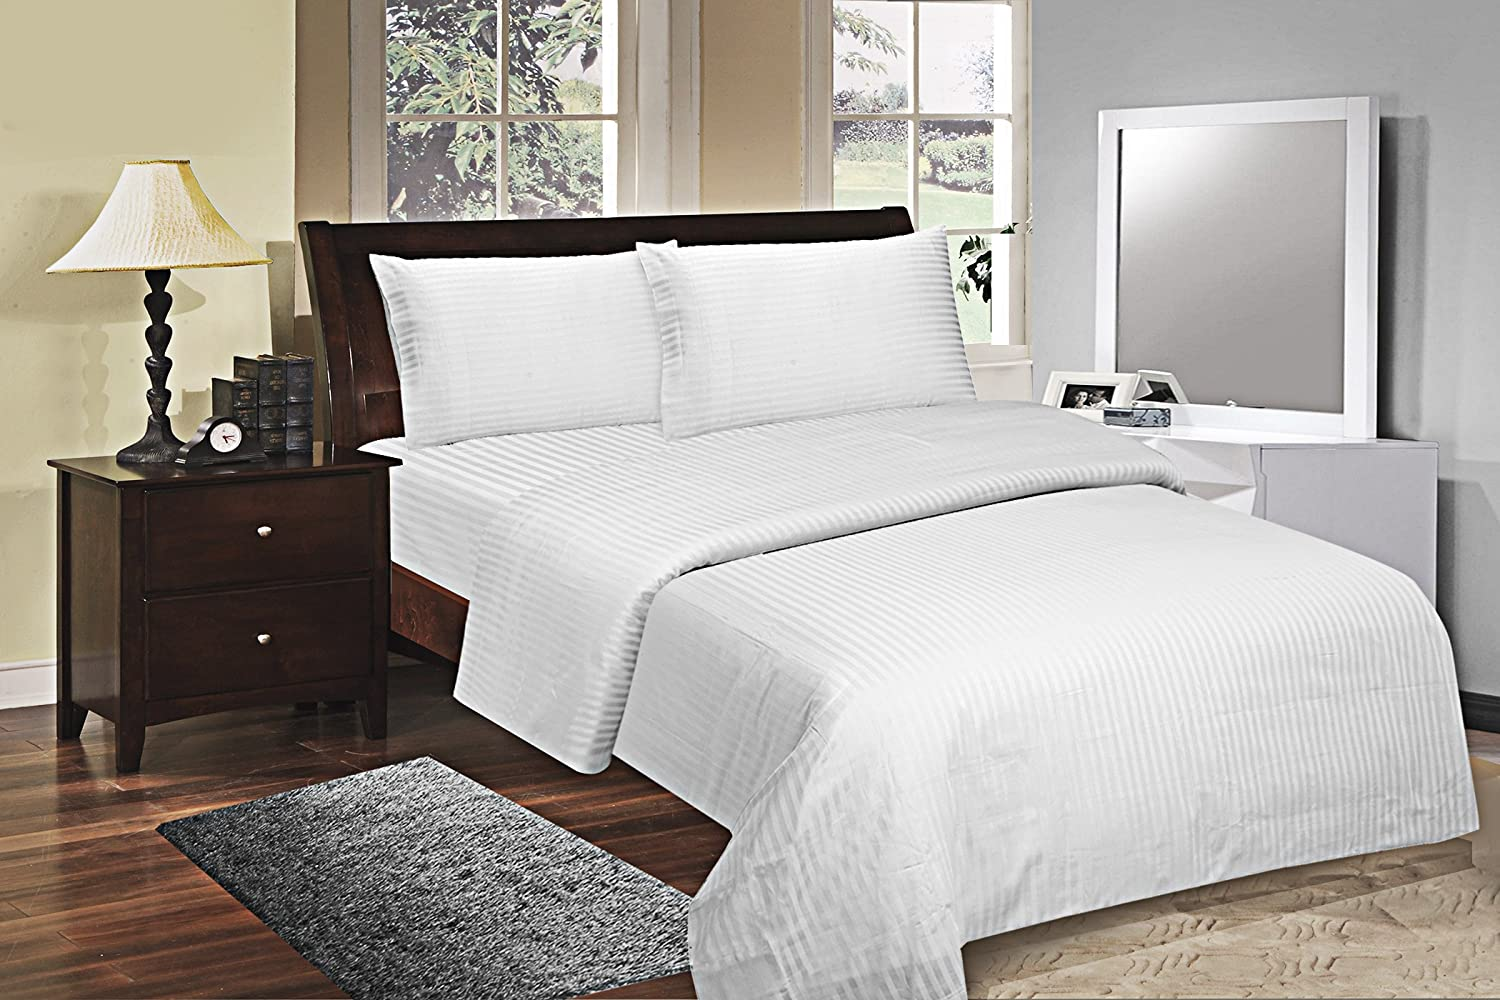 White Bonne Nuit 400 Thread Count Hotel Collection Luxury Bedding Bed Sheets - Bestseller- Super Sale